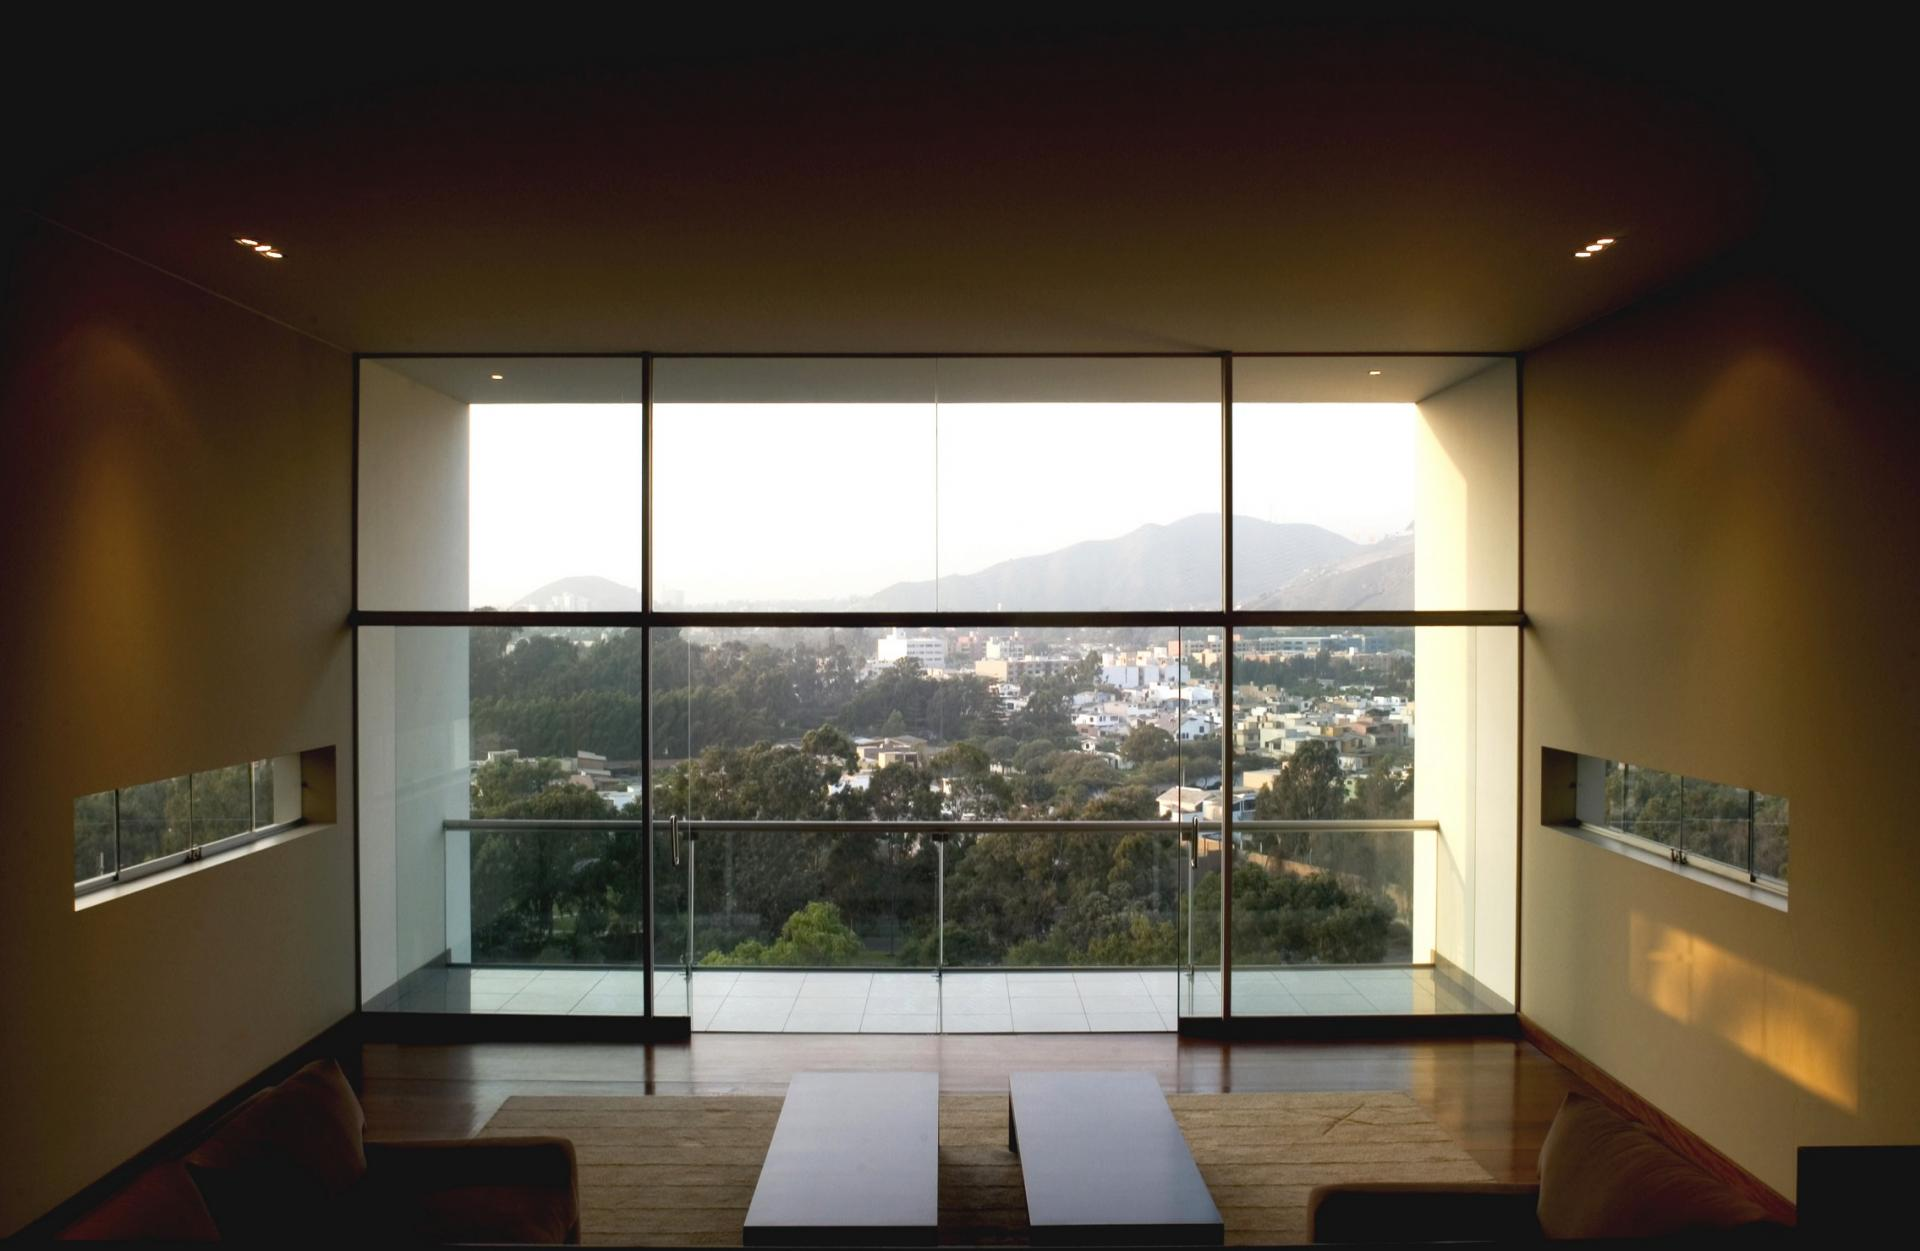 Luxurious Home Interior Design With Small Swimming Pool: City View Seen From Living Space Inside Through Glass Wall